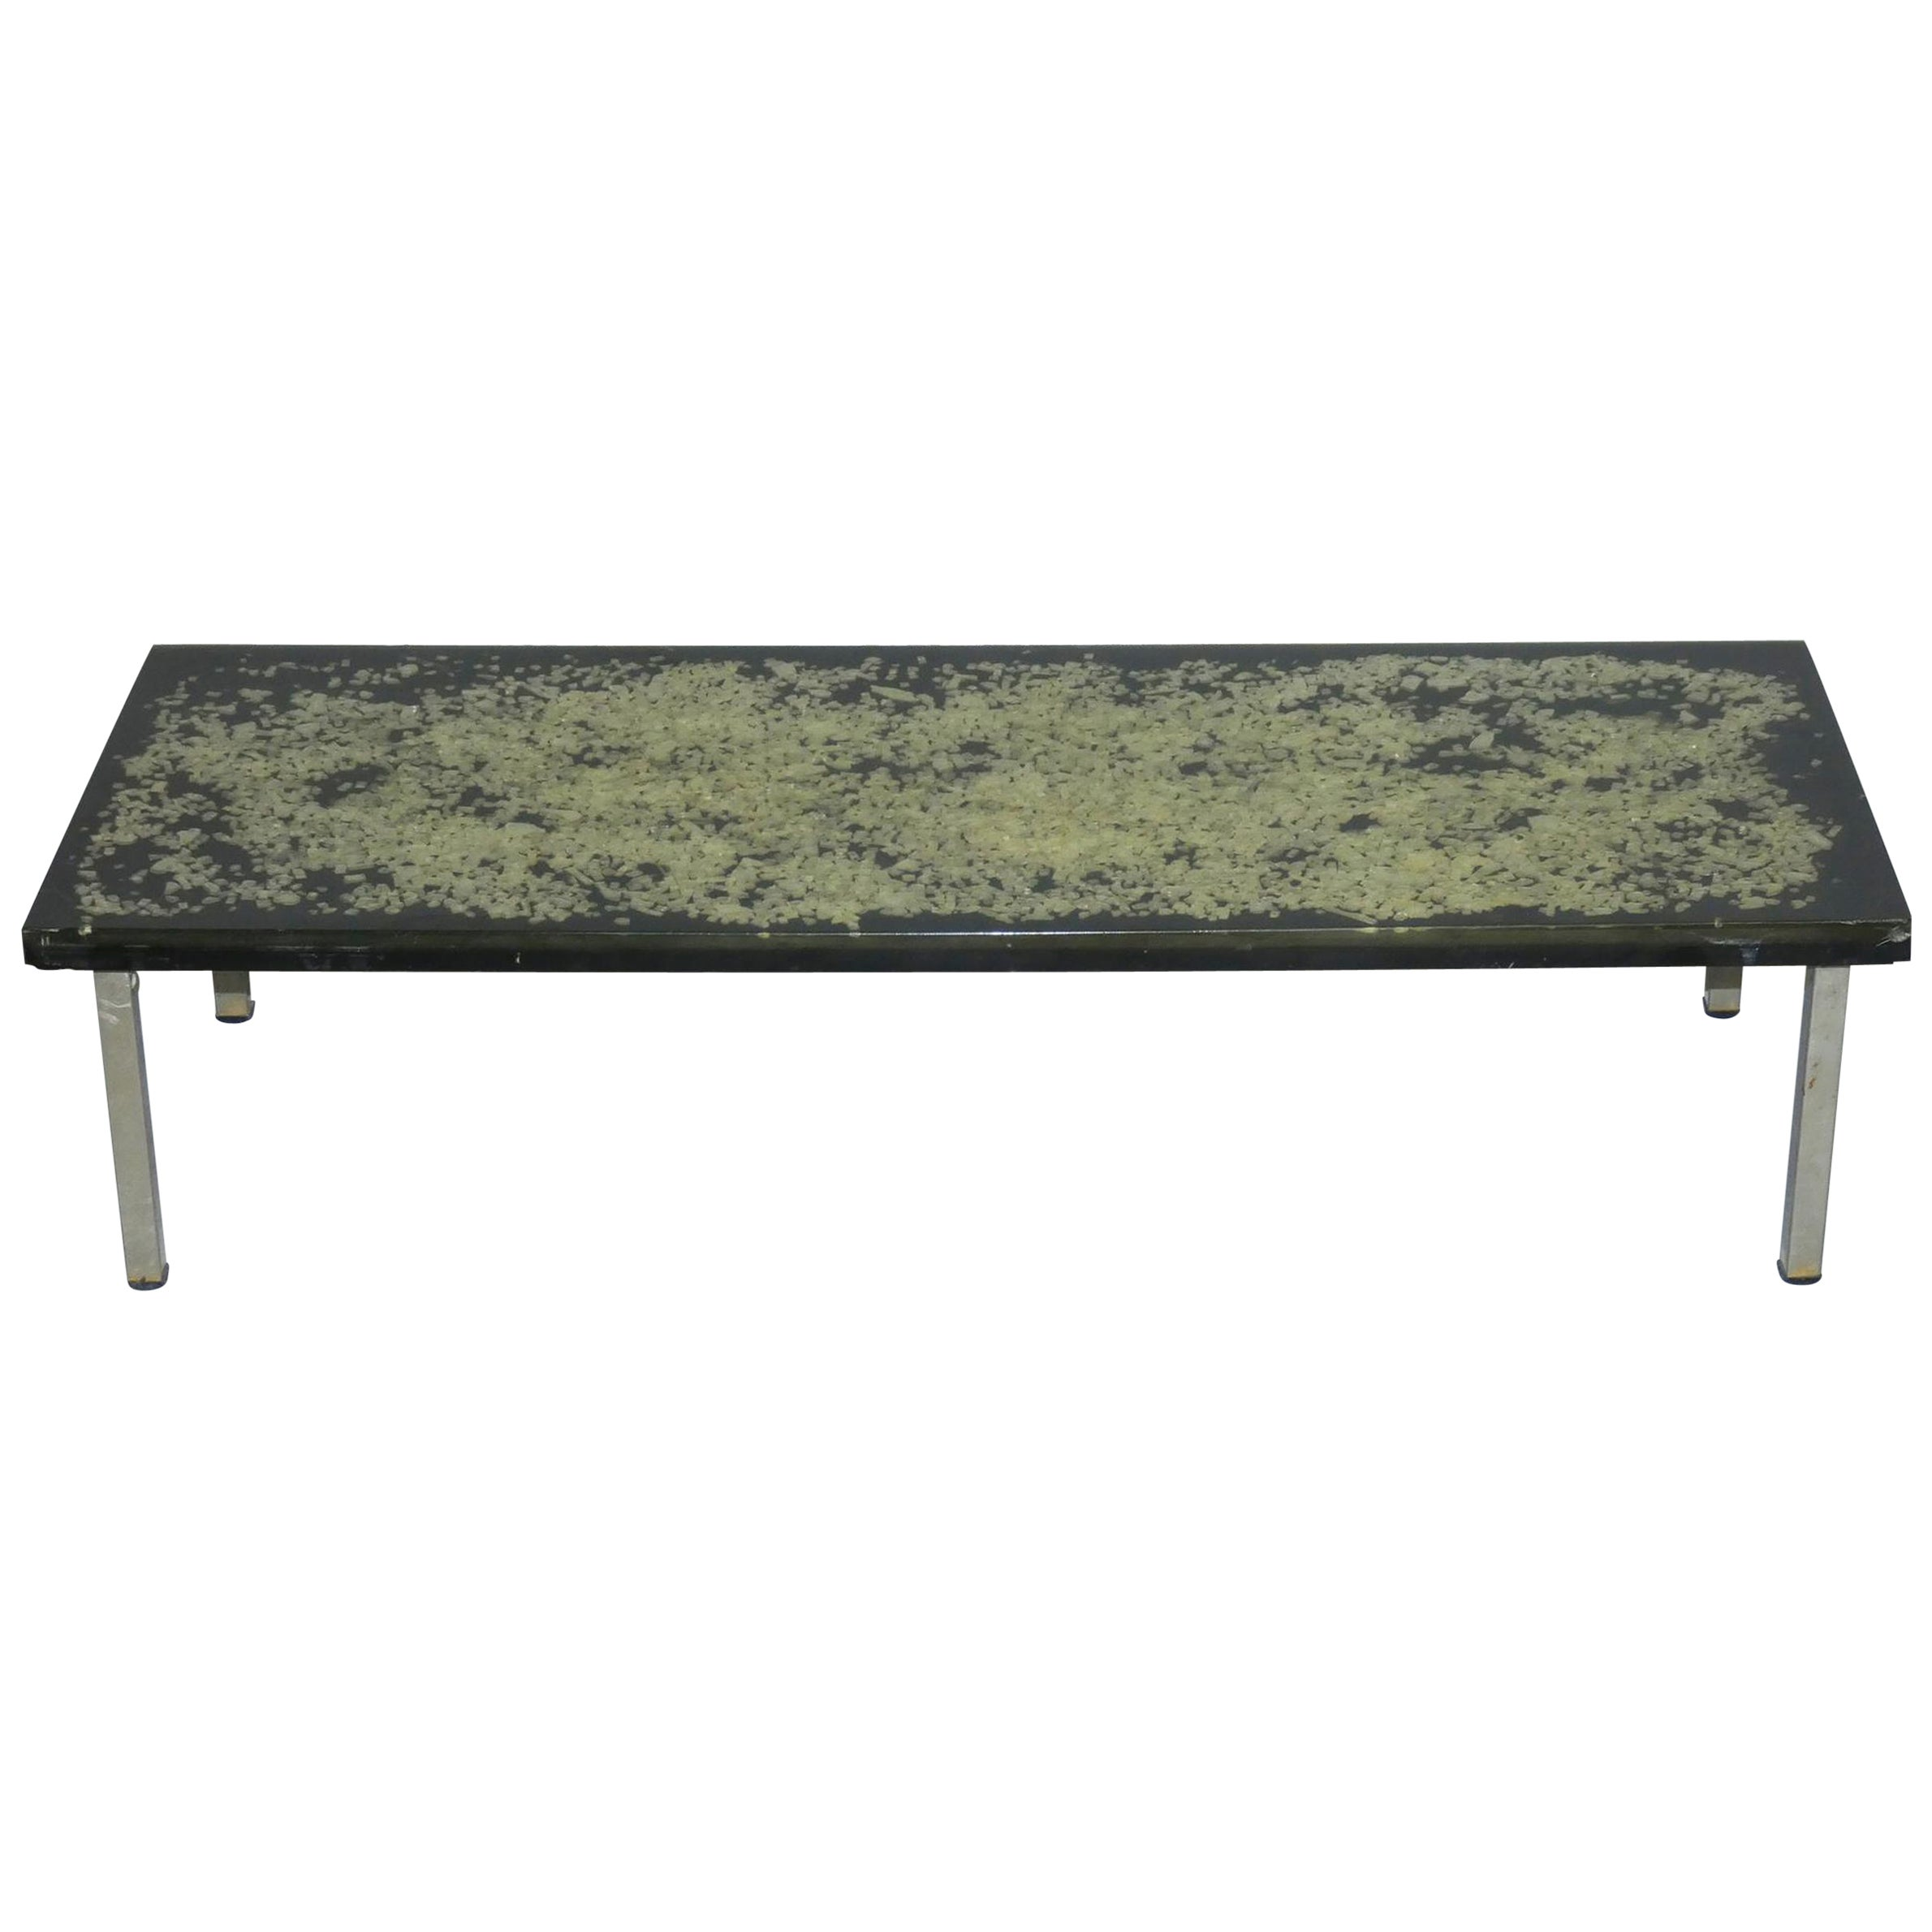 Table Basse En Metal Pierre Giraudon In Style Coffee Table In Resin And Metal Circa 1970